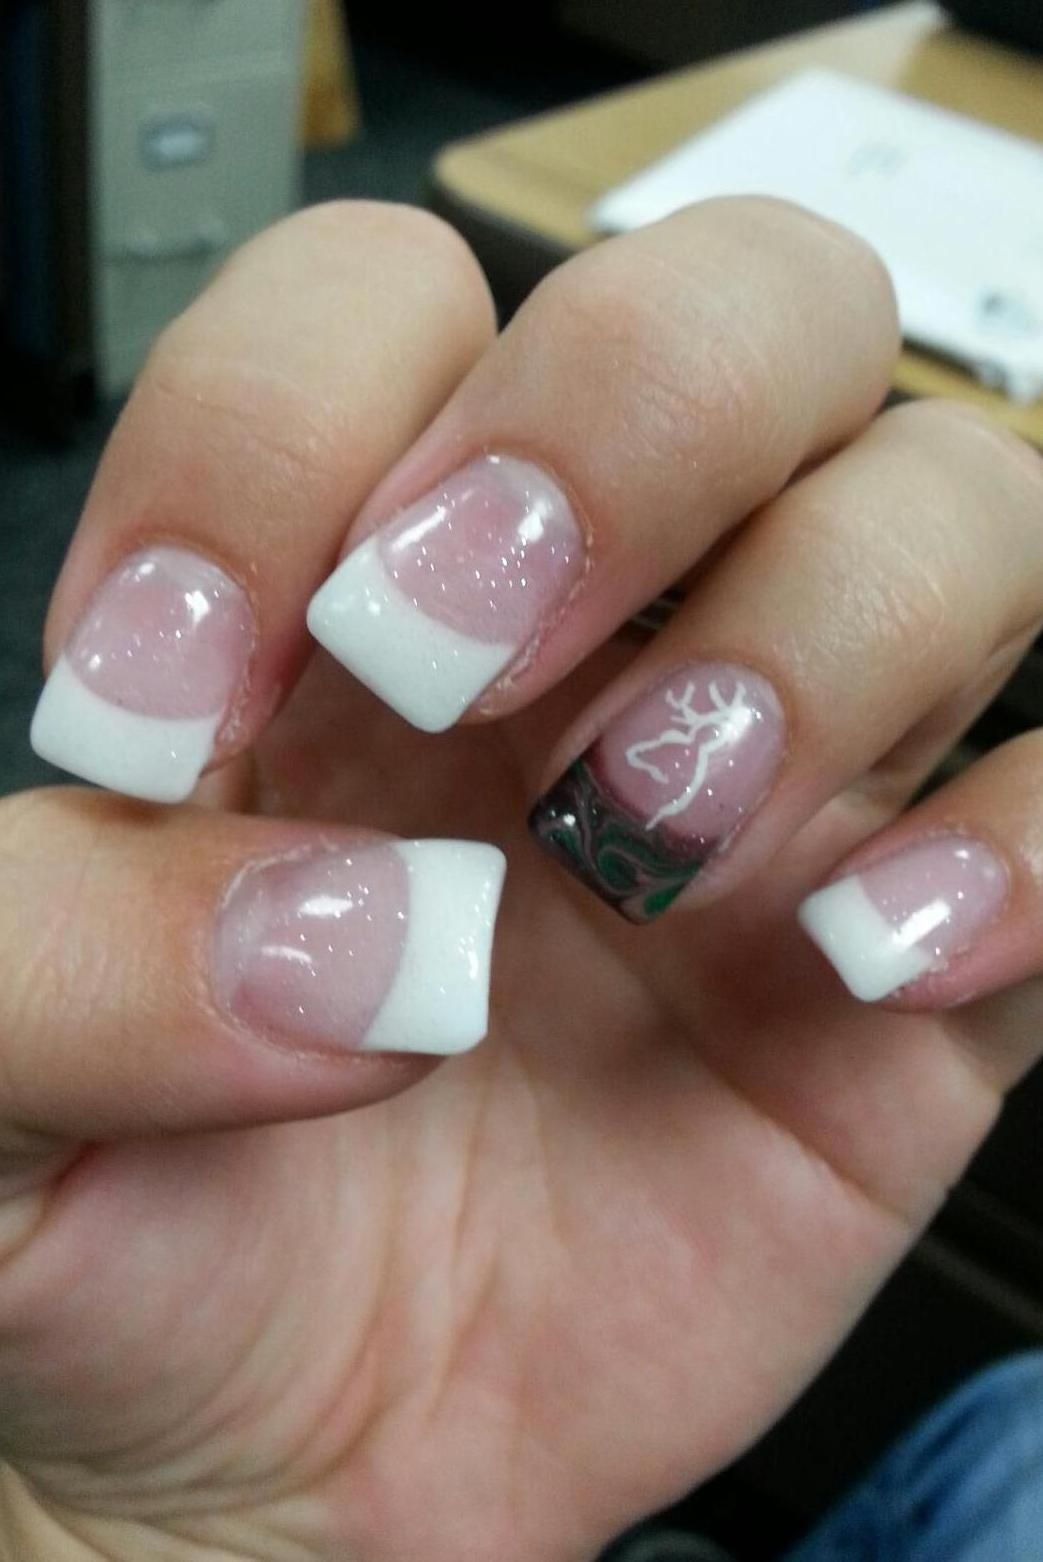 Classy white tips and a Camo accent nail with the Browning symbol ...